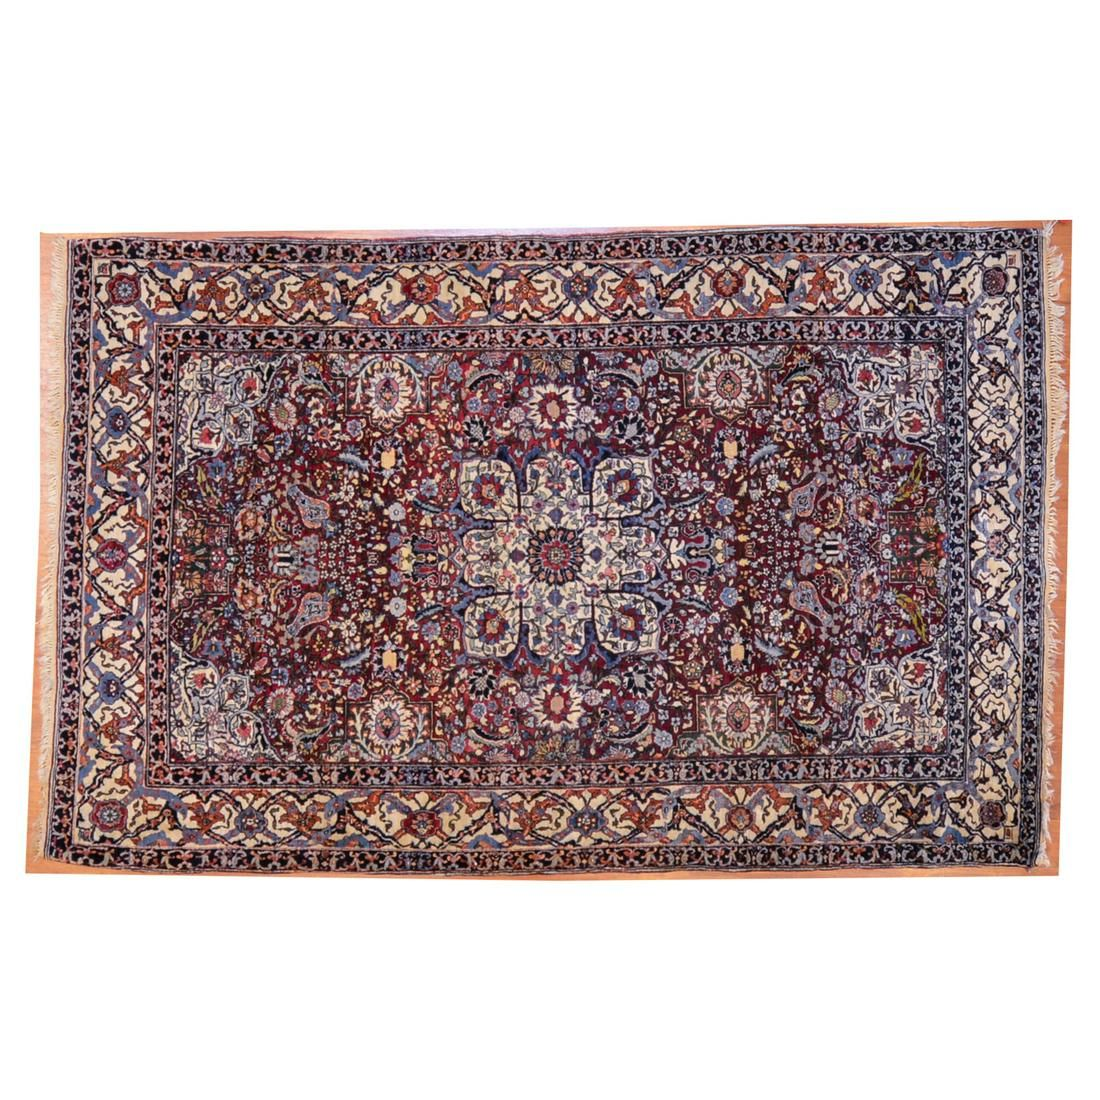 Antique Isfahan Rug, Persia, 4.5 x 6.11